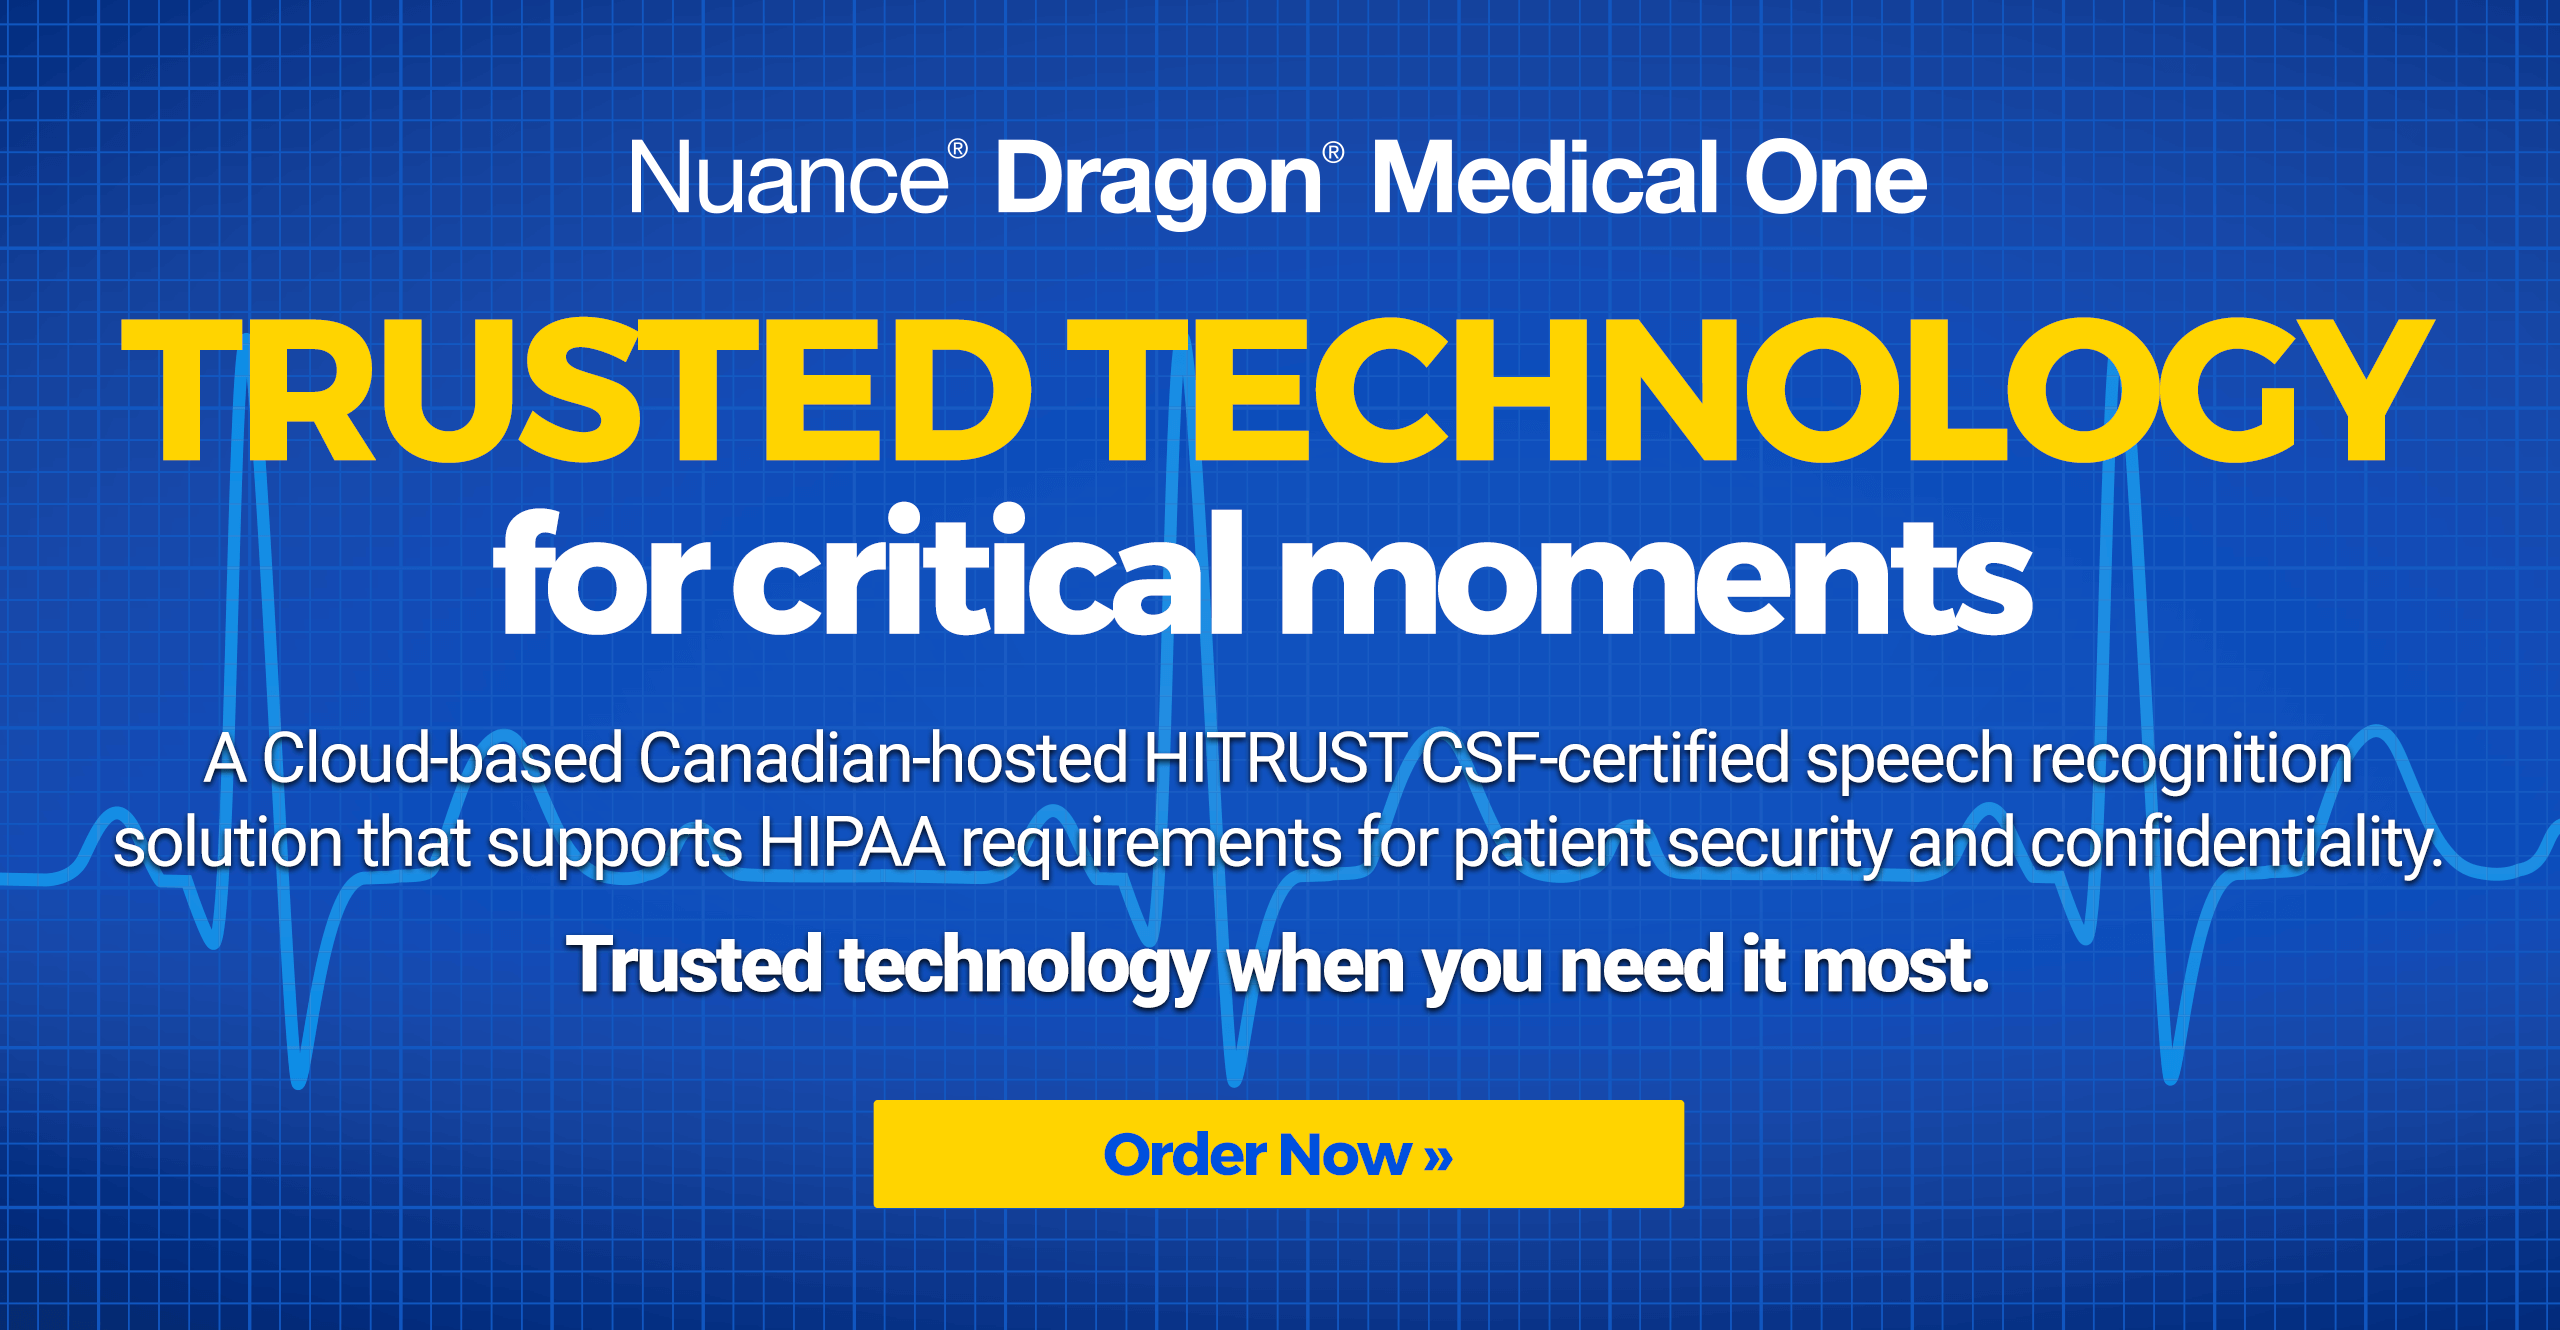 Dragon Medical One - Trusted Technology for Critical Moments - A Cloud‑based Canadian-hosted HITRUST CSF‑certified speech recognition solution that supports HIPAA requirements for patient security and confidentiality.